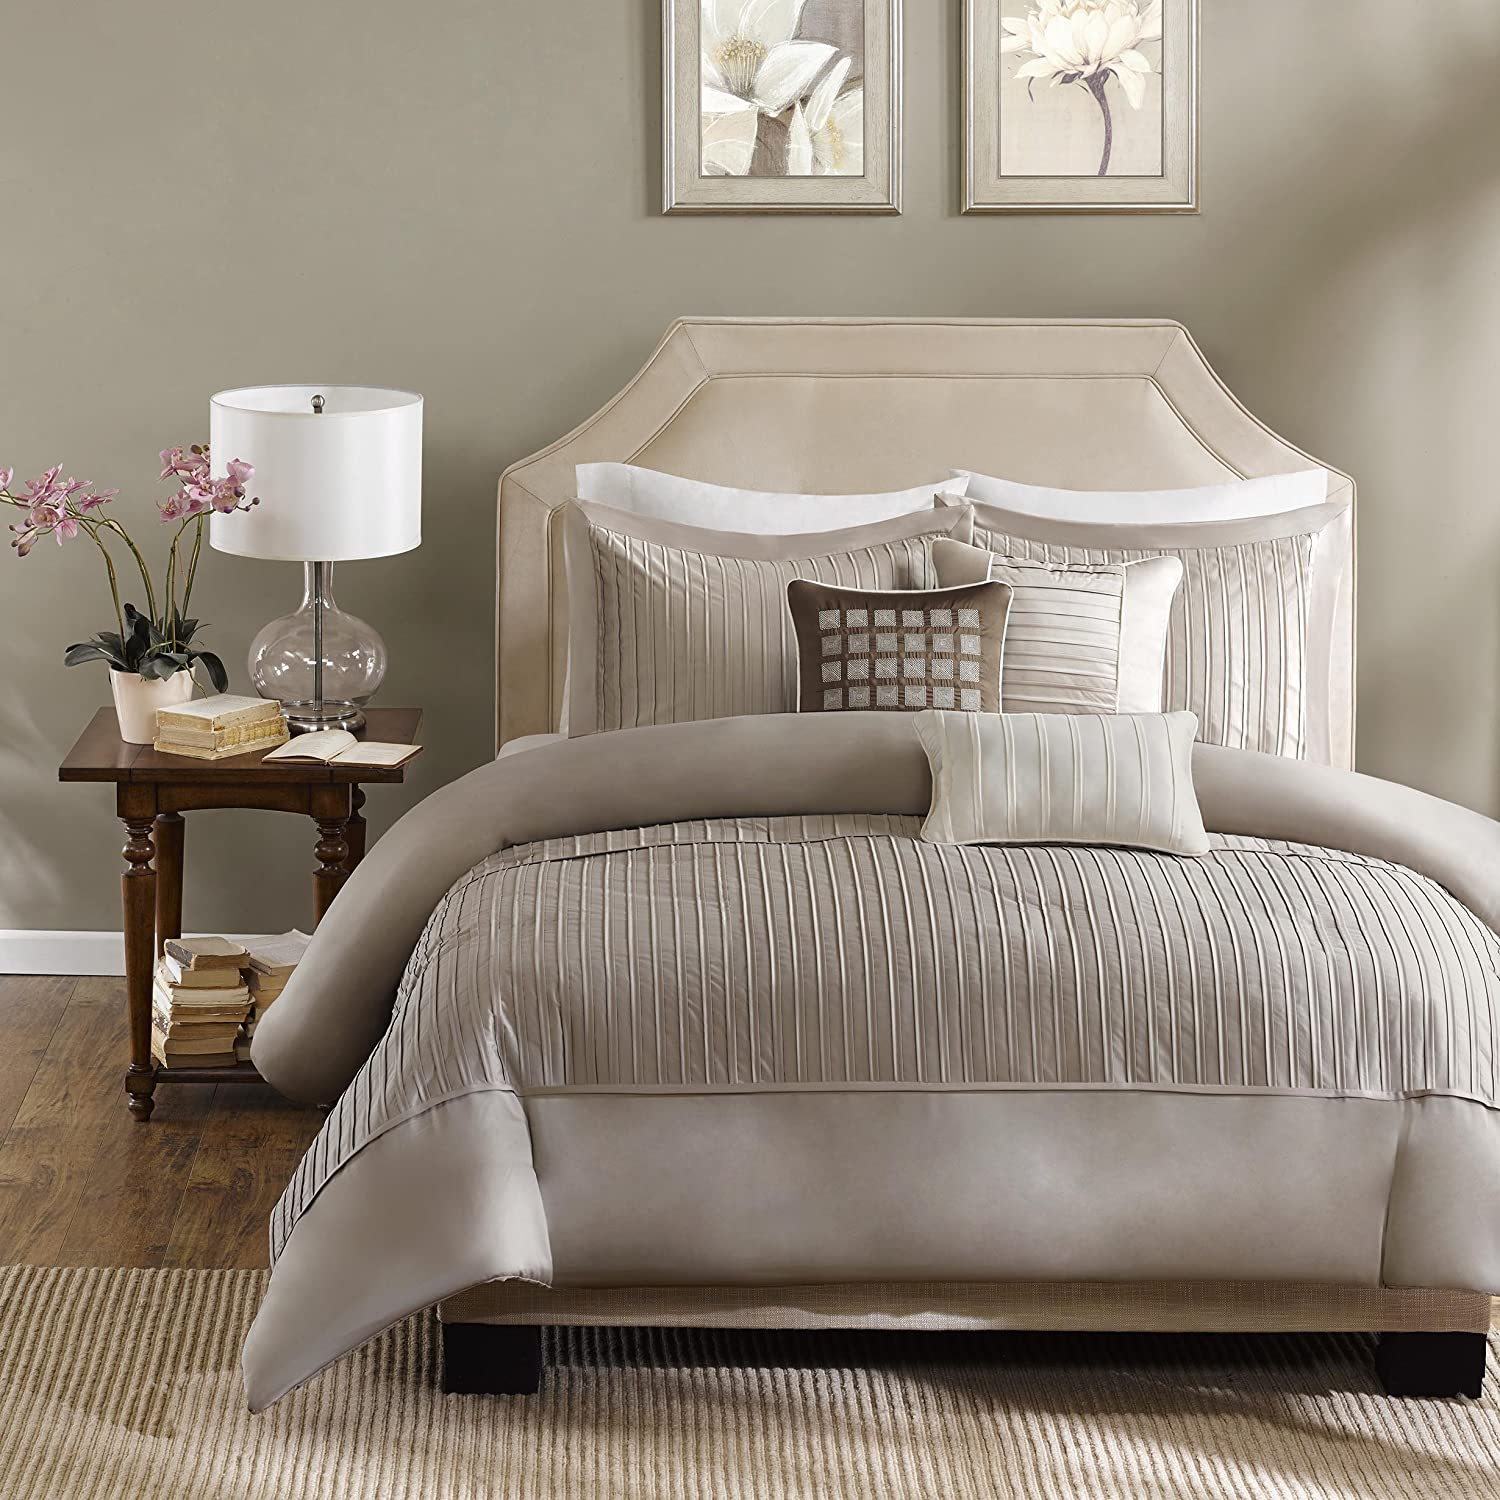 pi grey single king our prd set from super cover direct duvet buy allium dreamscene floral